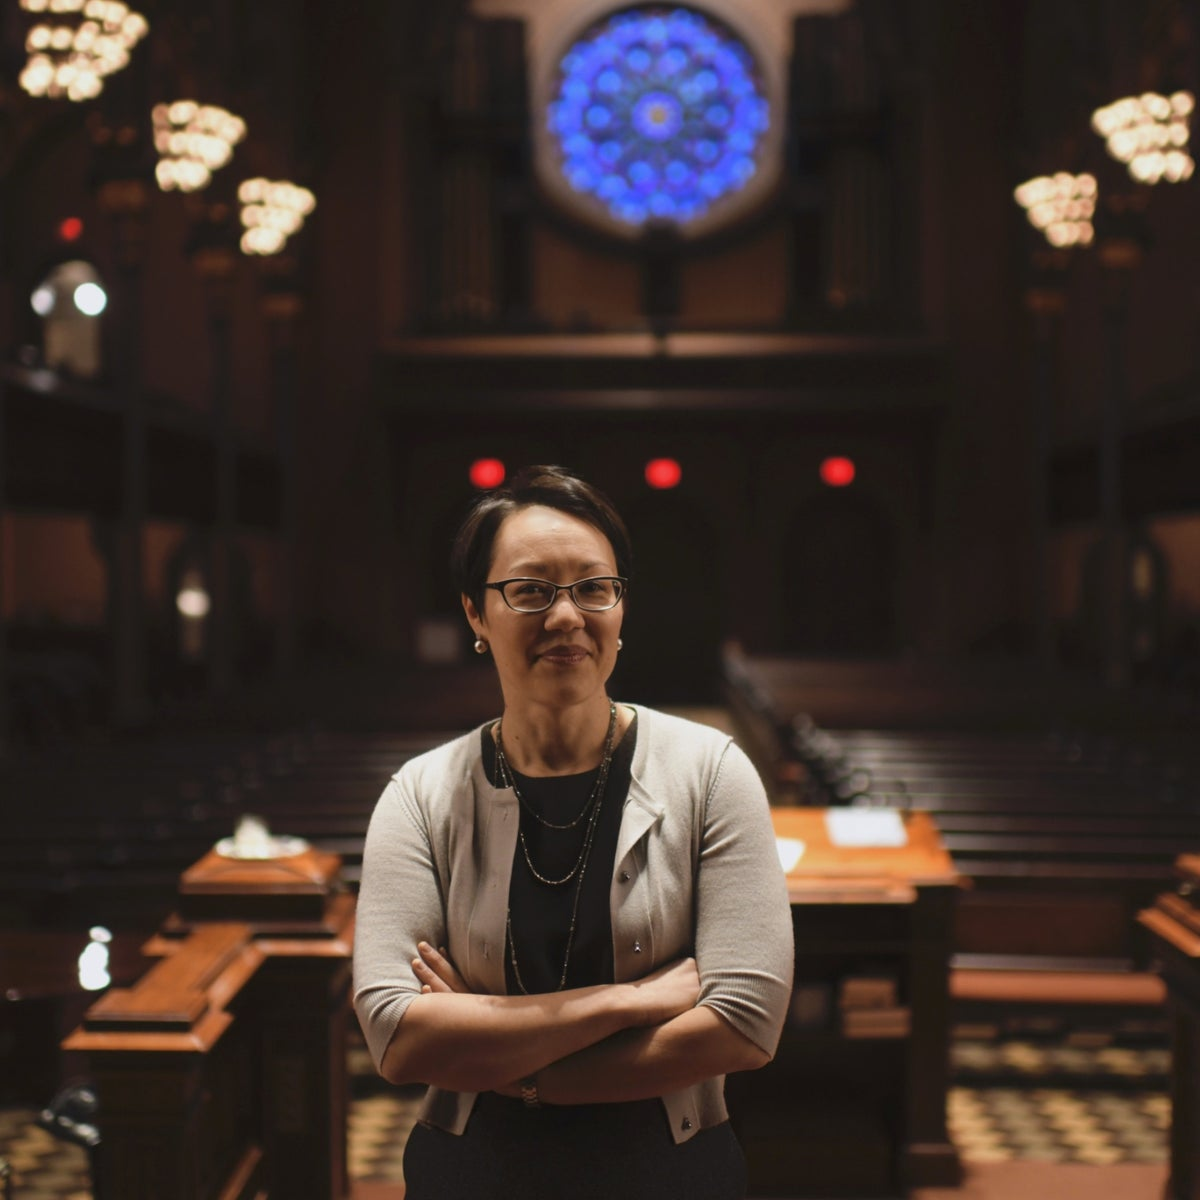 Angela Warnick Buchdahl, a senior rabbi at New York's Central Synagogue.